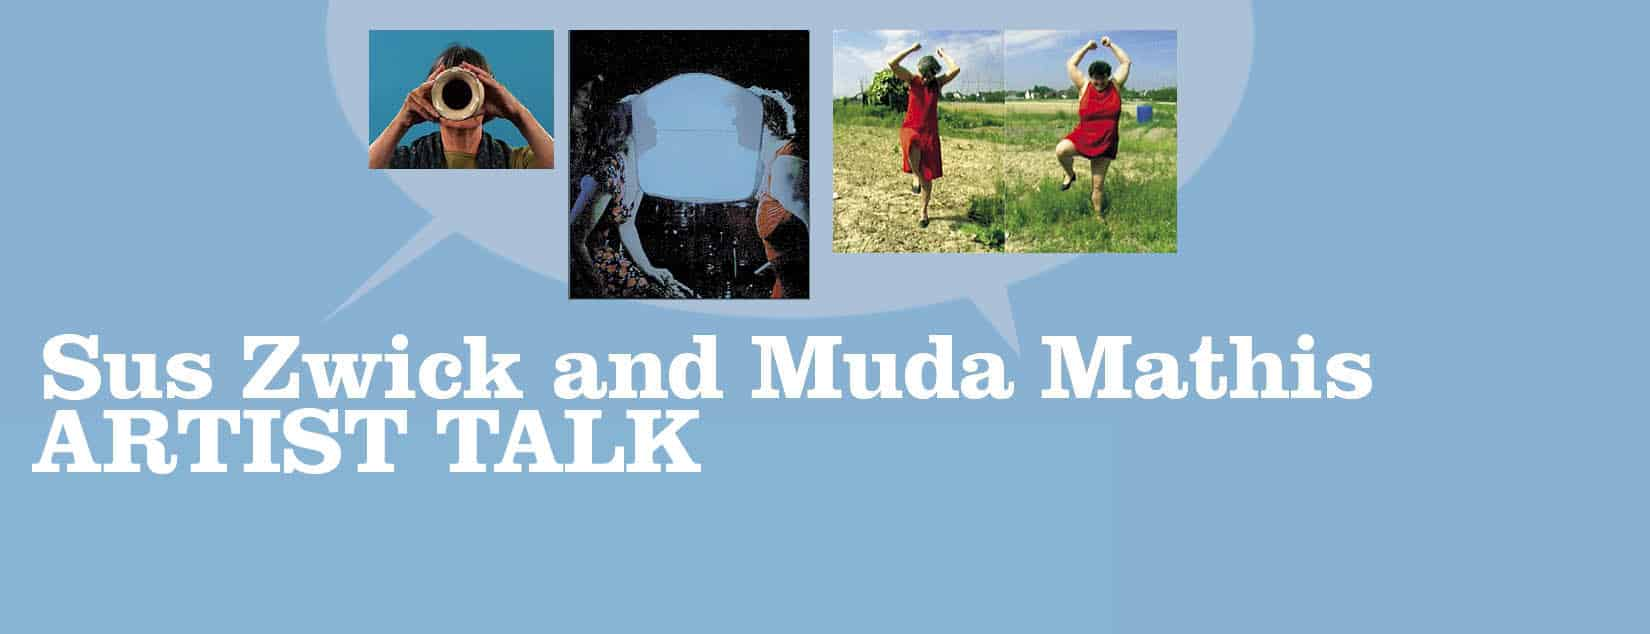 WTF Gallery # Artist talk: Sus Zwick and Muda Mathis